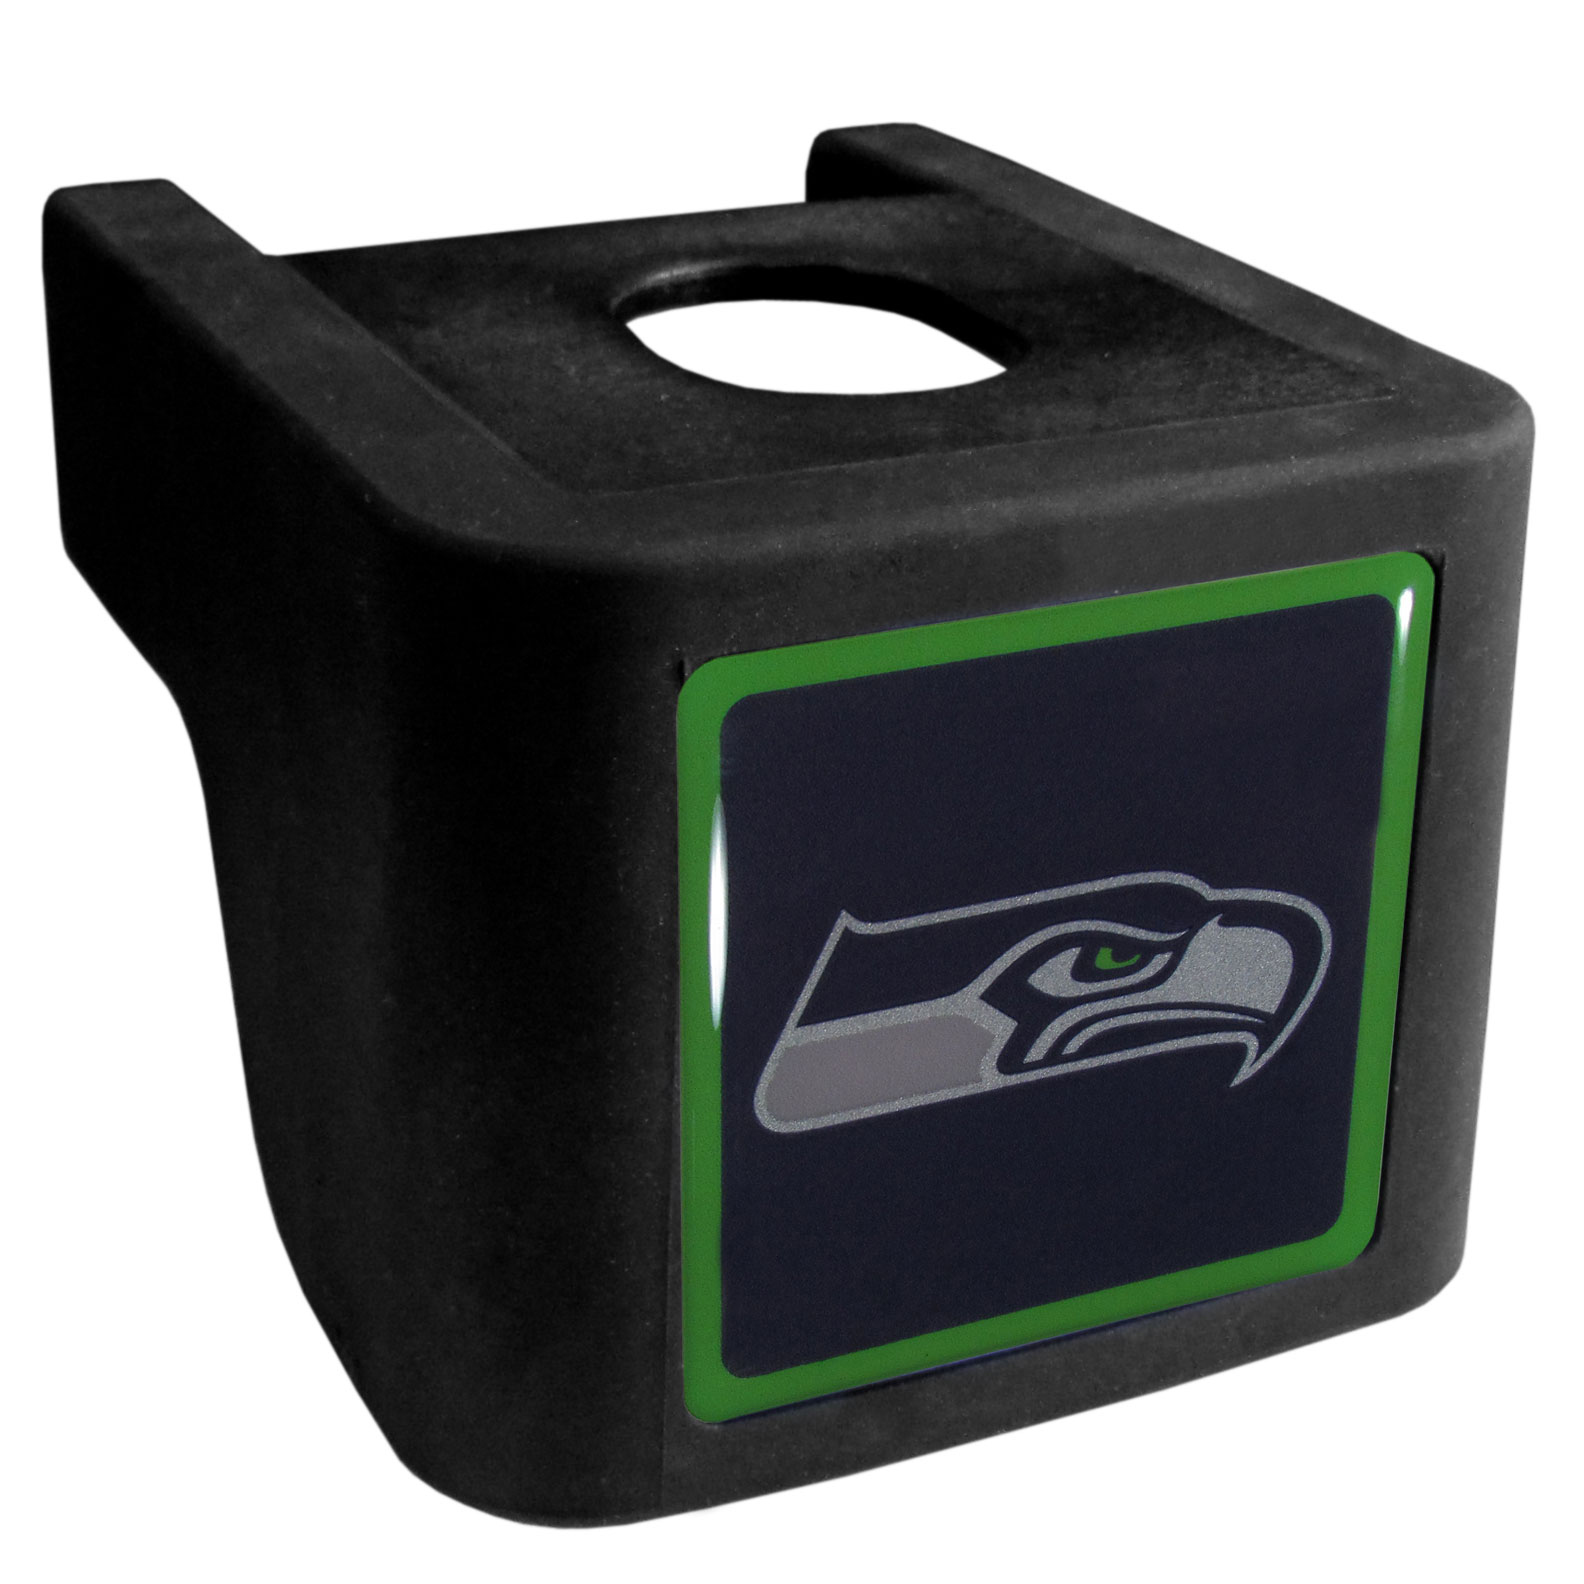 Seattle Seahawks Shin Shield Hitch Cover - This unique hitch cover features a large Seattle Seahawks logo. If you have ever hooked up a trailer or boat your have probably smashed your shins on the ball hitch a few times. This revolutionary shin shield hitch cover provides your much abused shins with the protection they deserve! The tough rubber hitch is rated to work with Class V hitch receivers hauling up to 17,000 gross trailer weight and 1,700 tongue weight allowing you to leave it on while hauling.